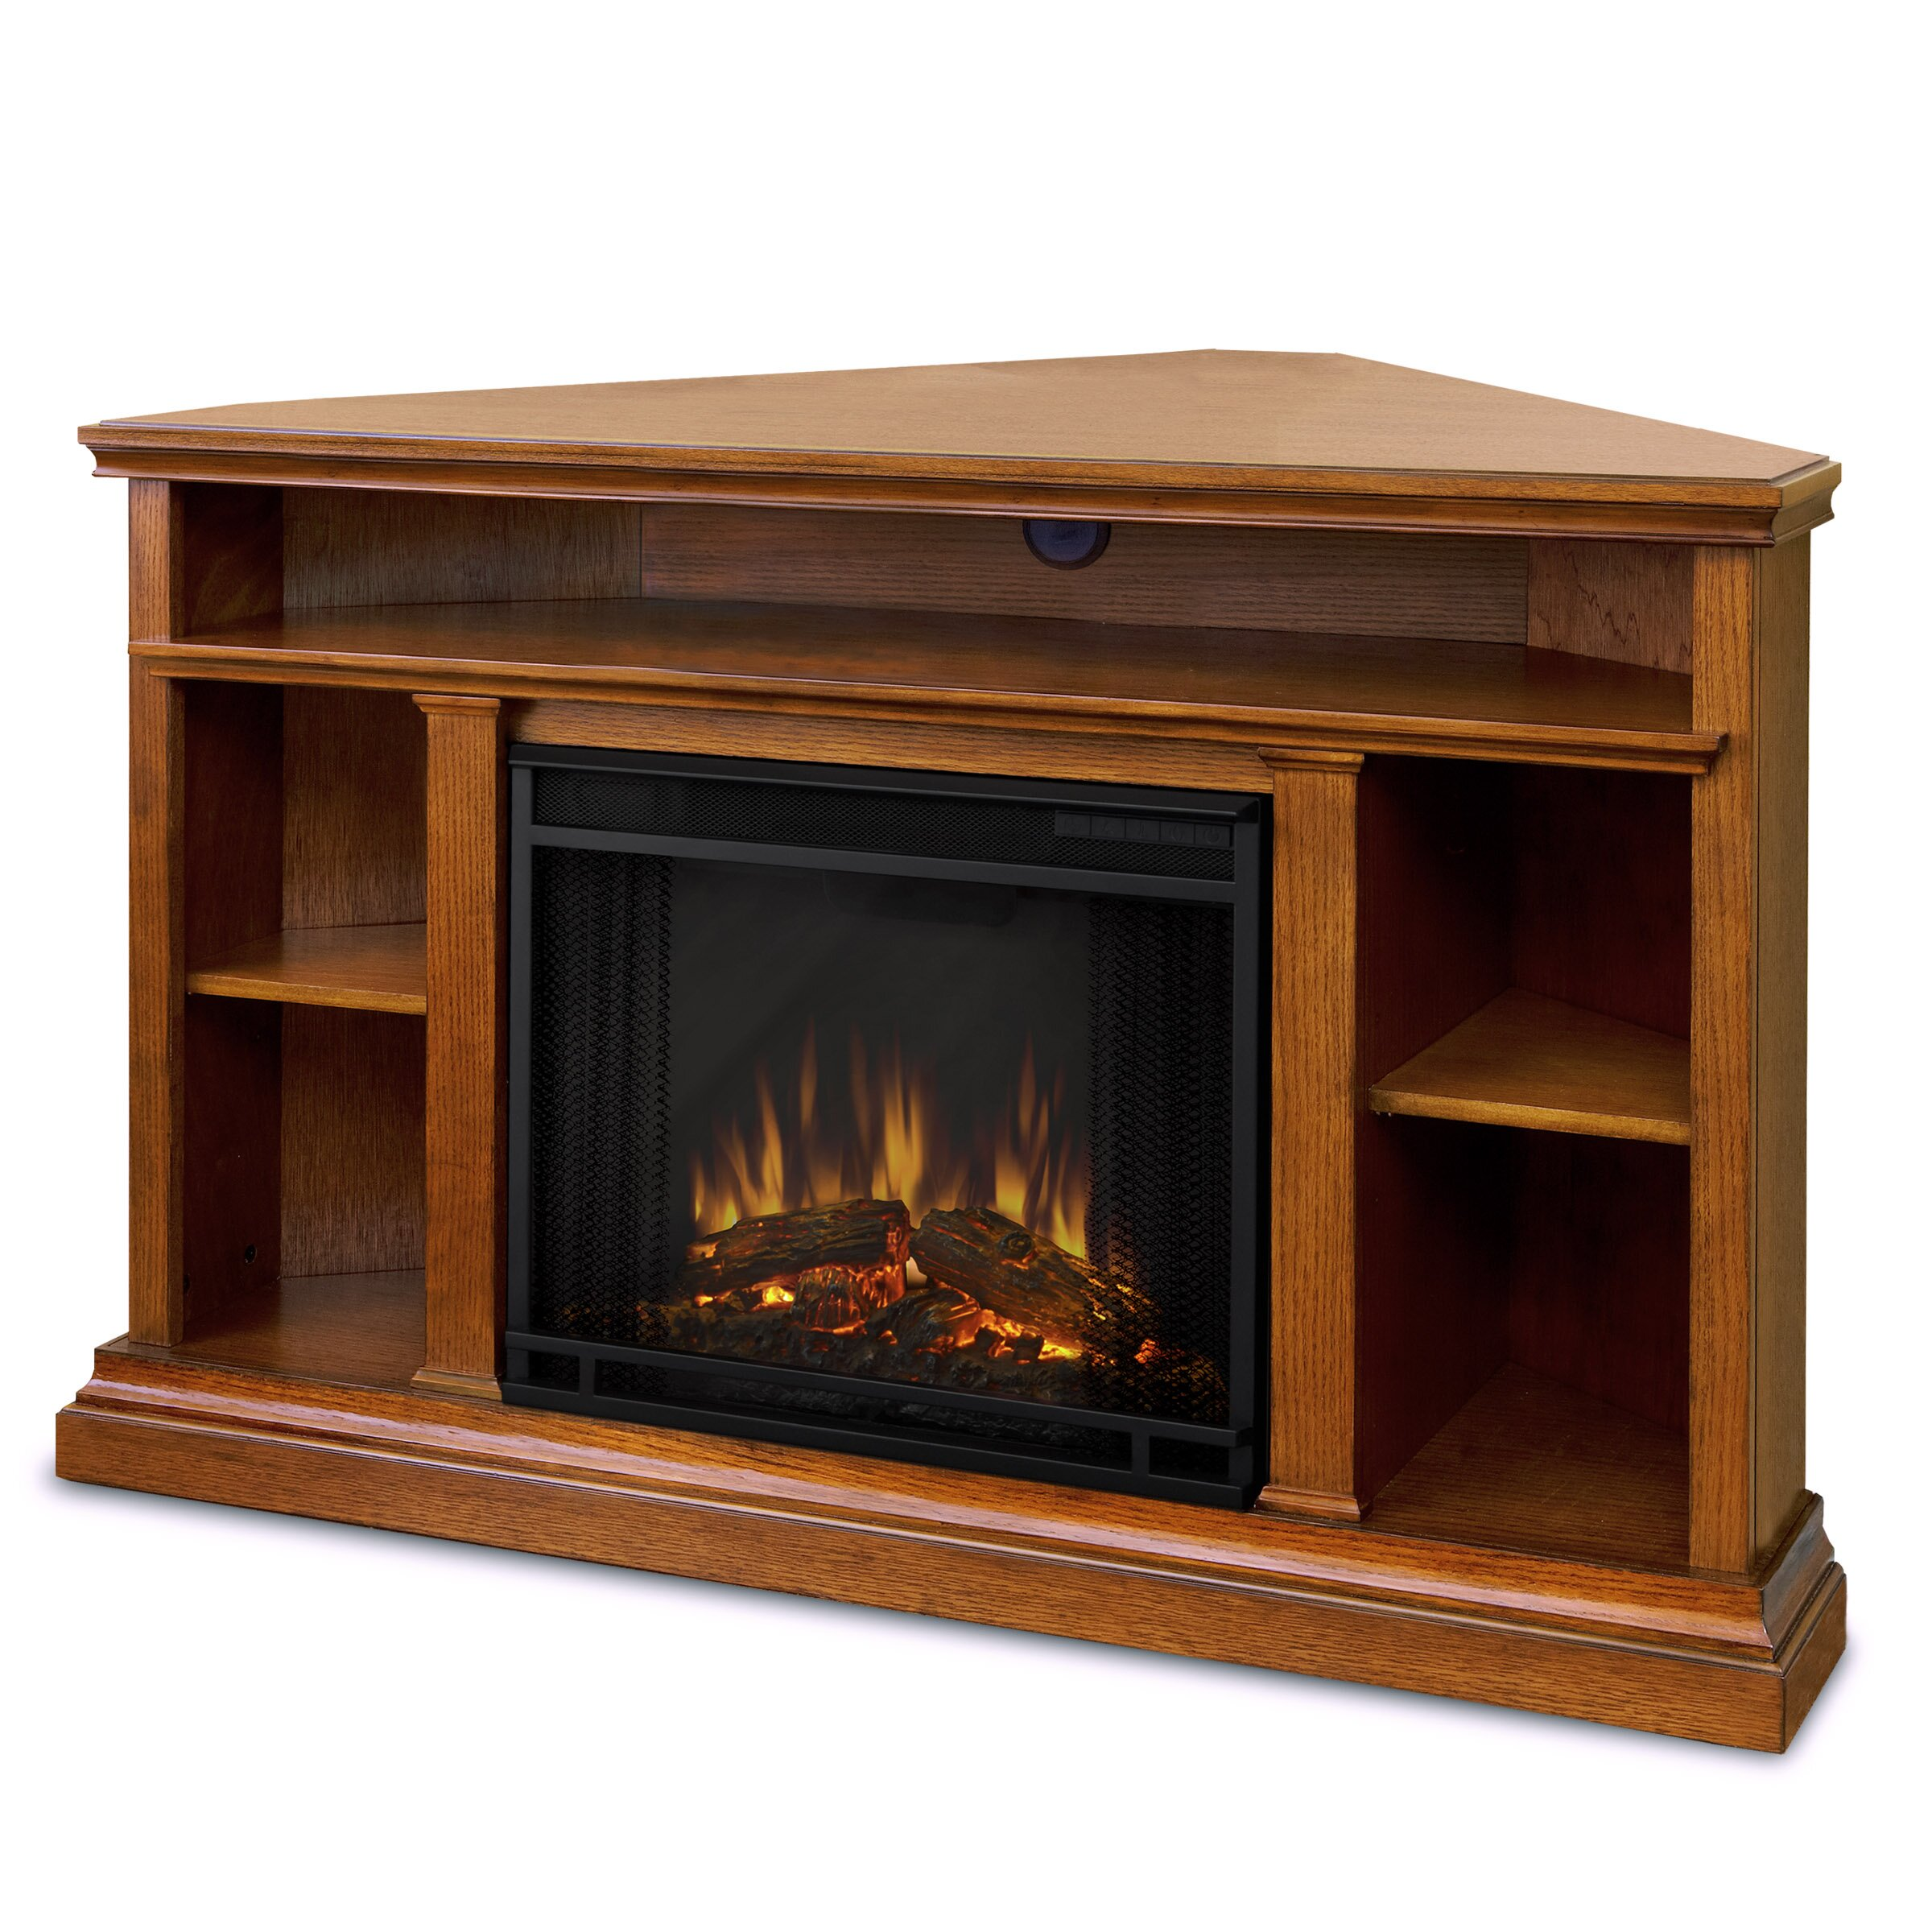 60 inch corner tv stand - Churchill Tv Stand With Electric Fireplace